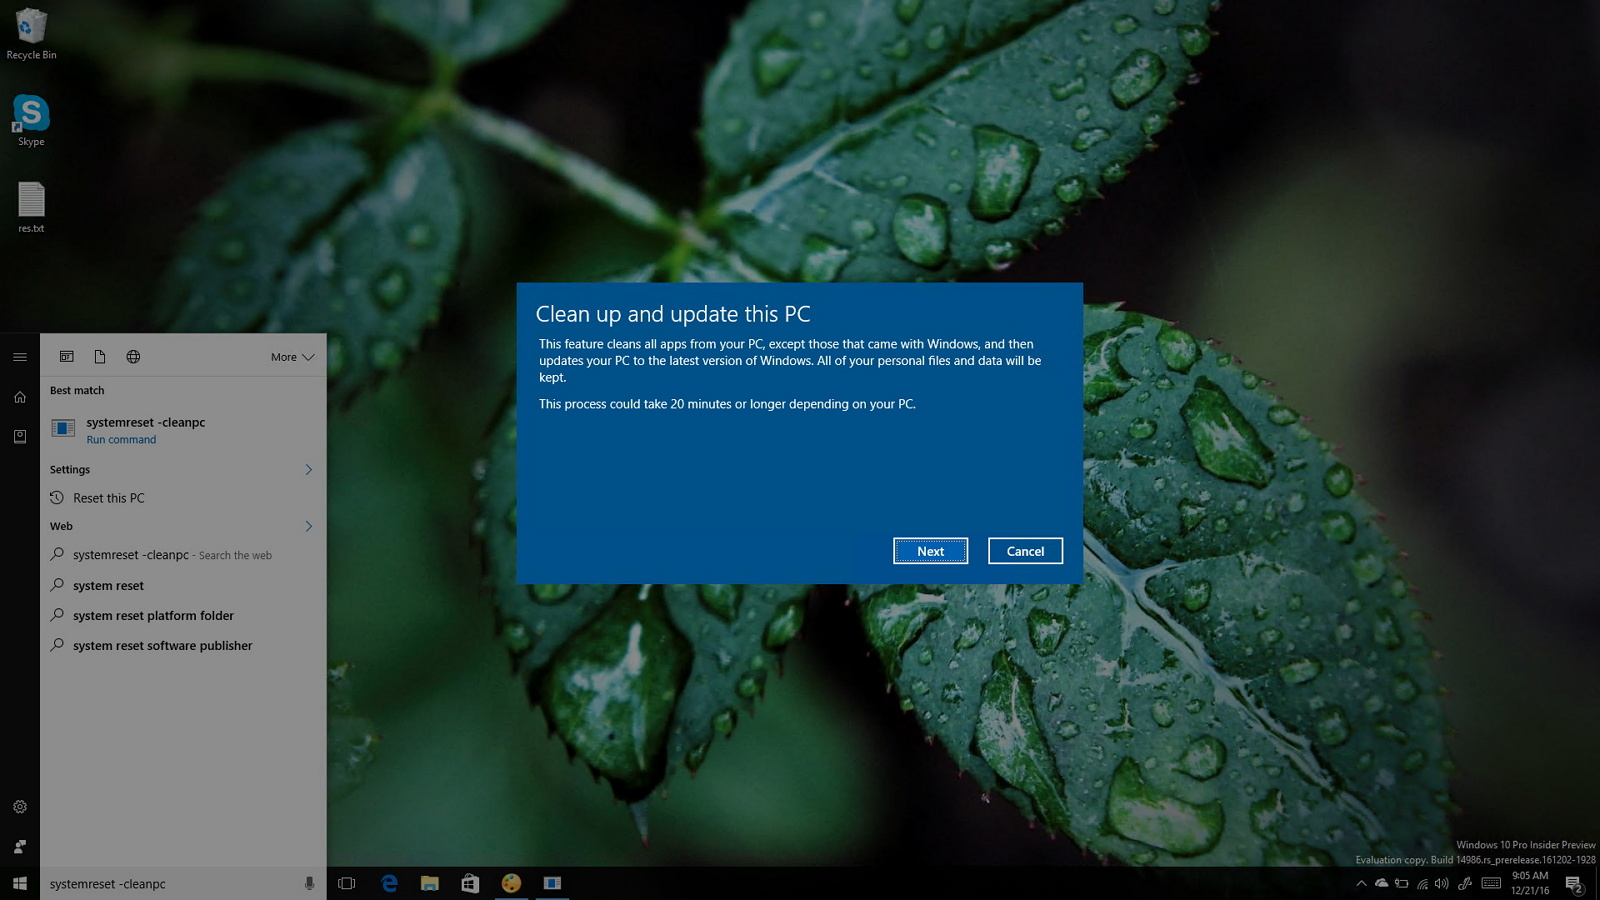 Windows 10 Creators Update: Clean up and update this PC